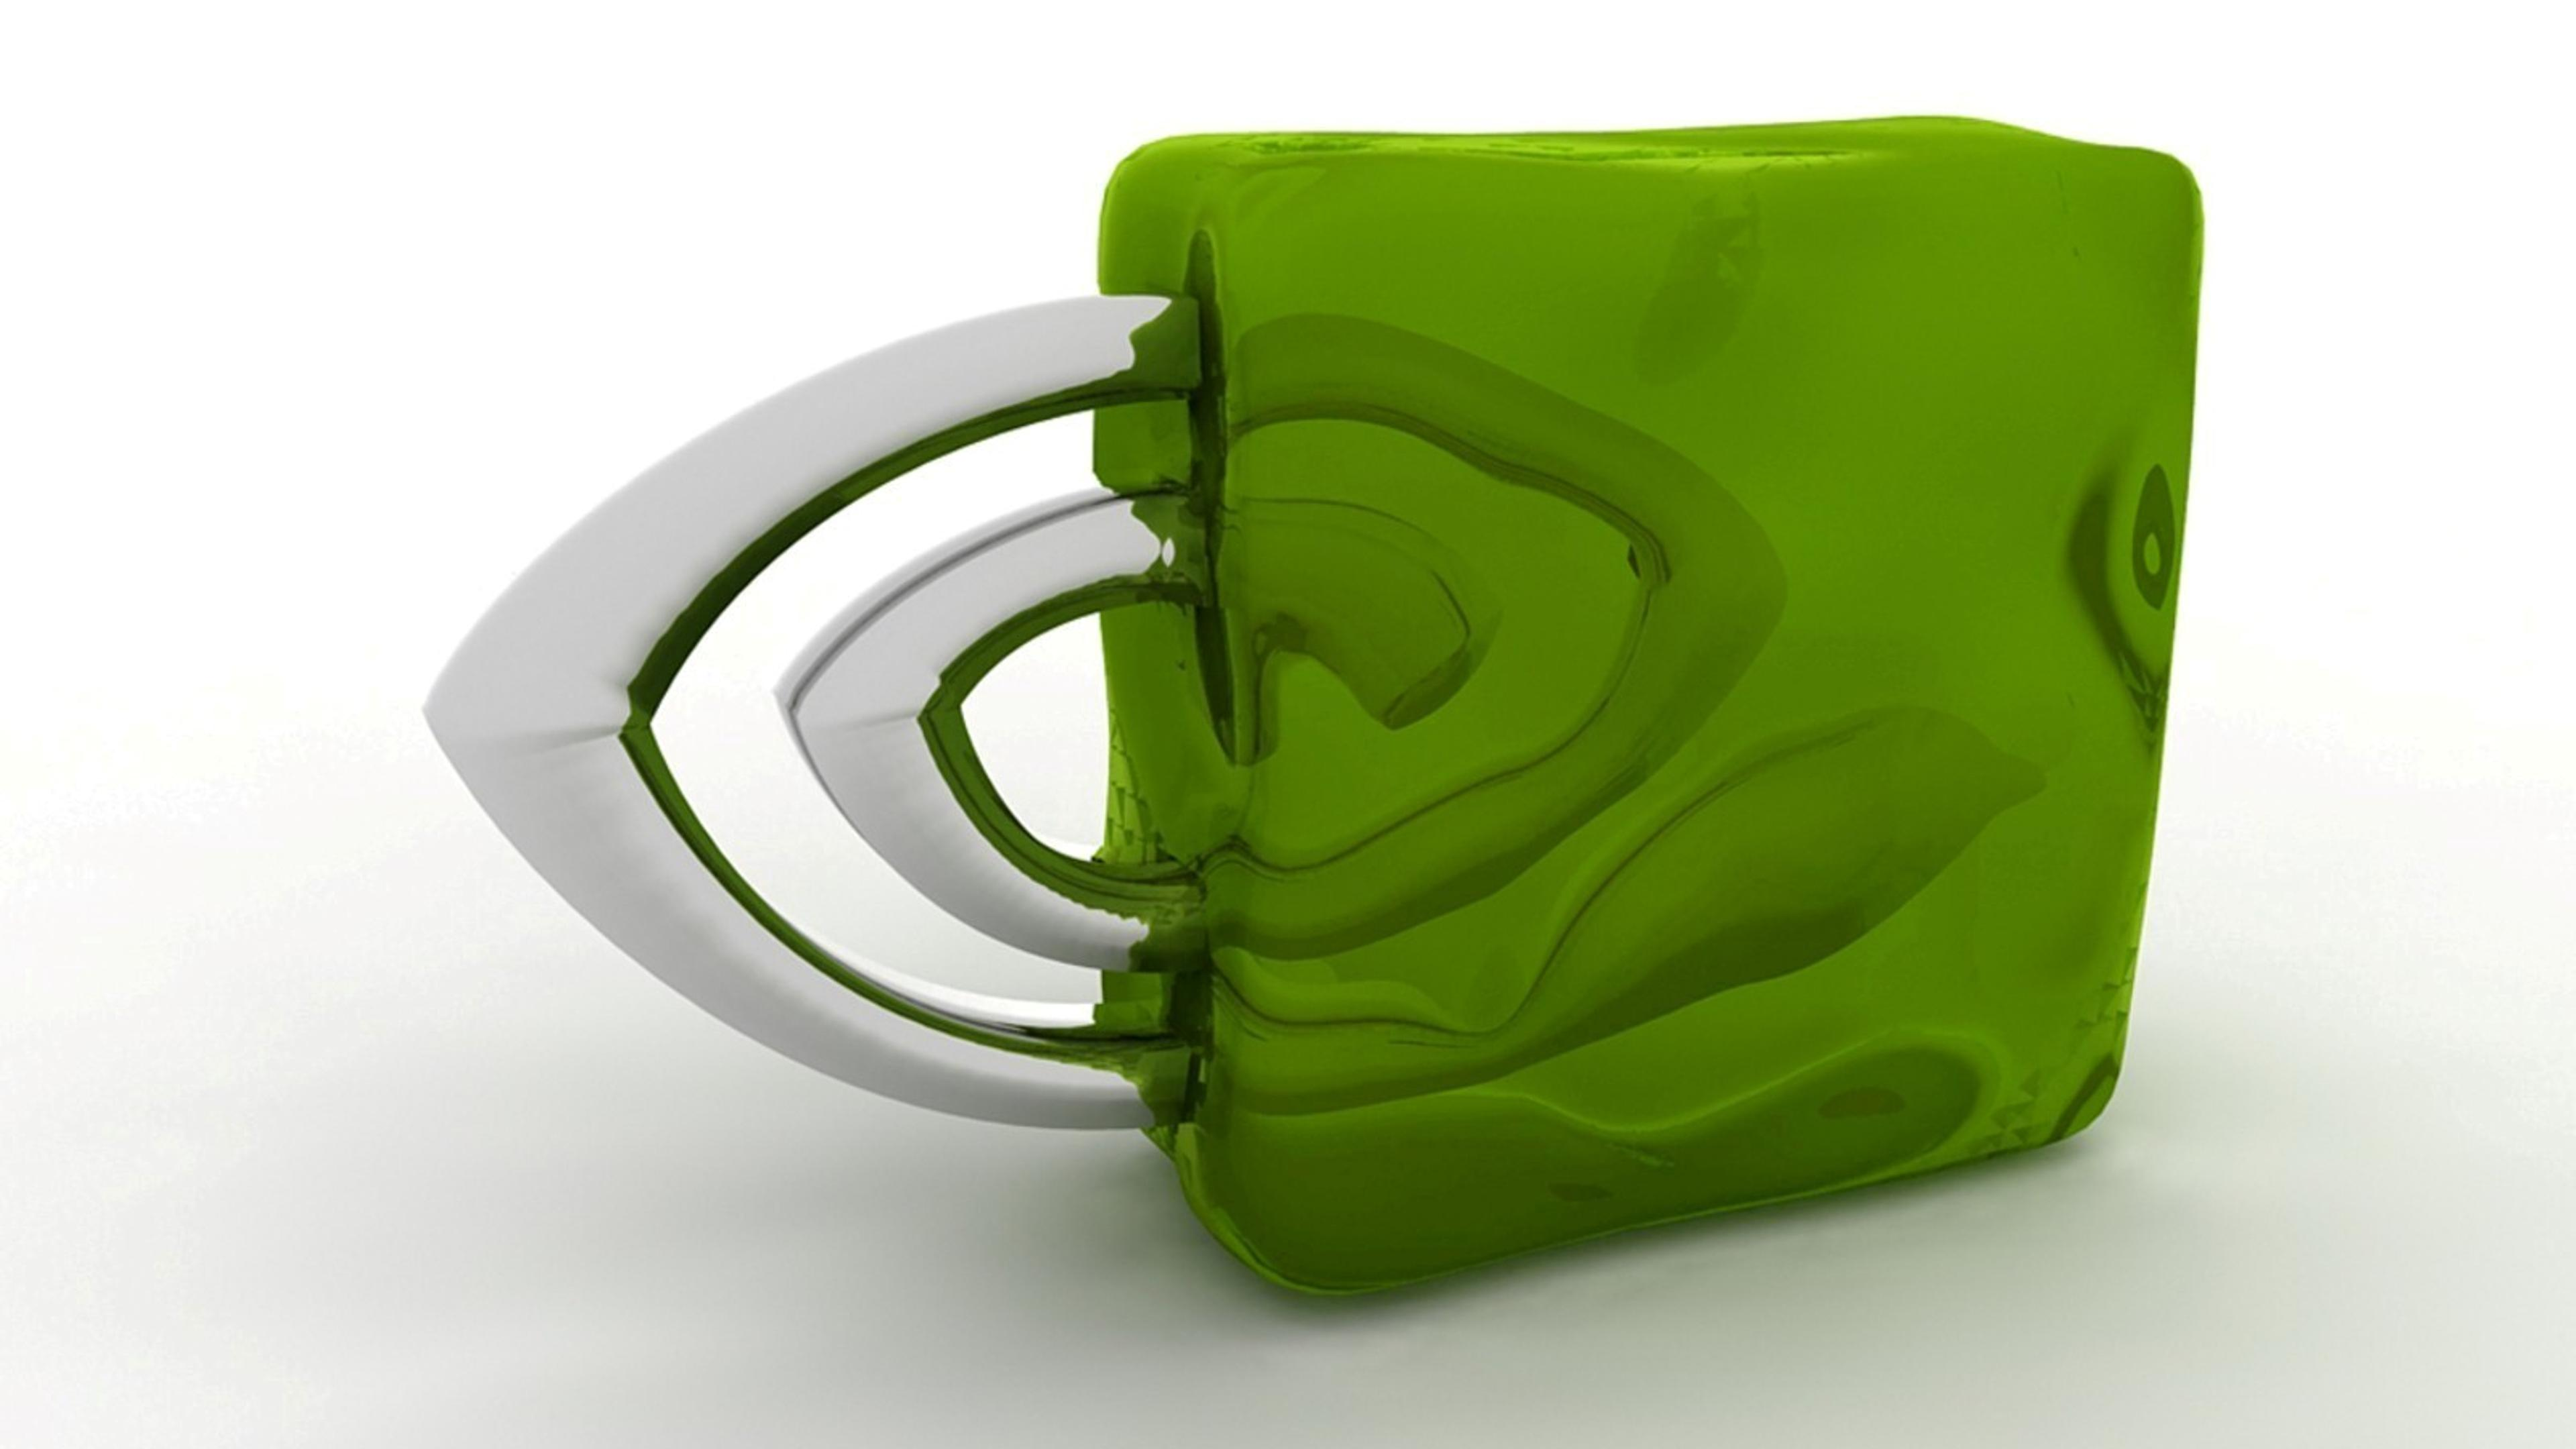 Nvidia Wallpaper - CNSouP Collections